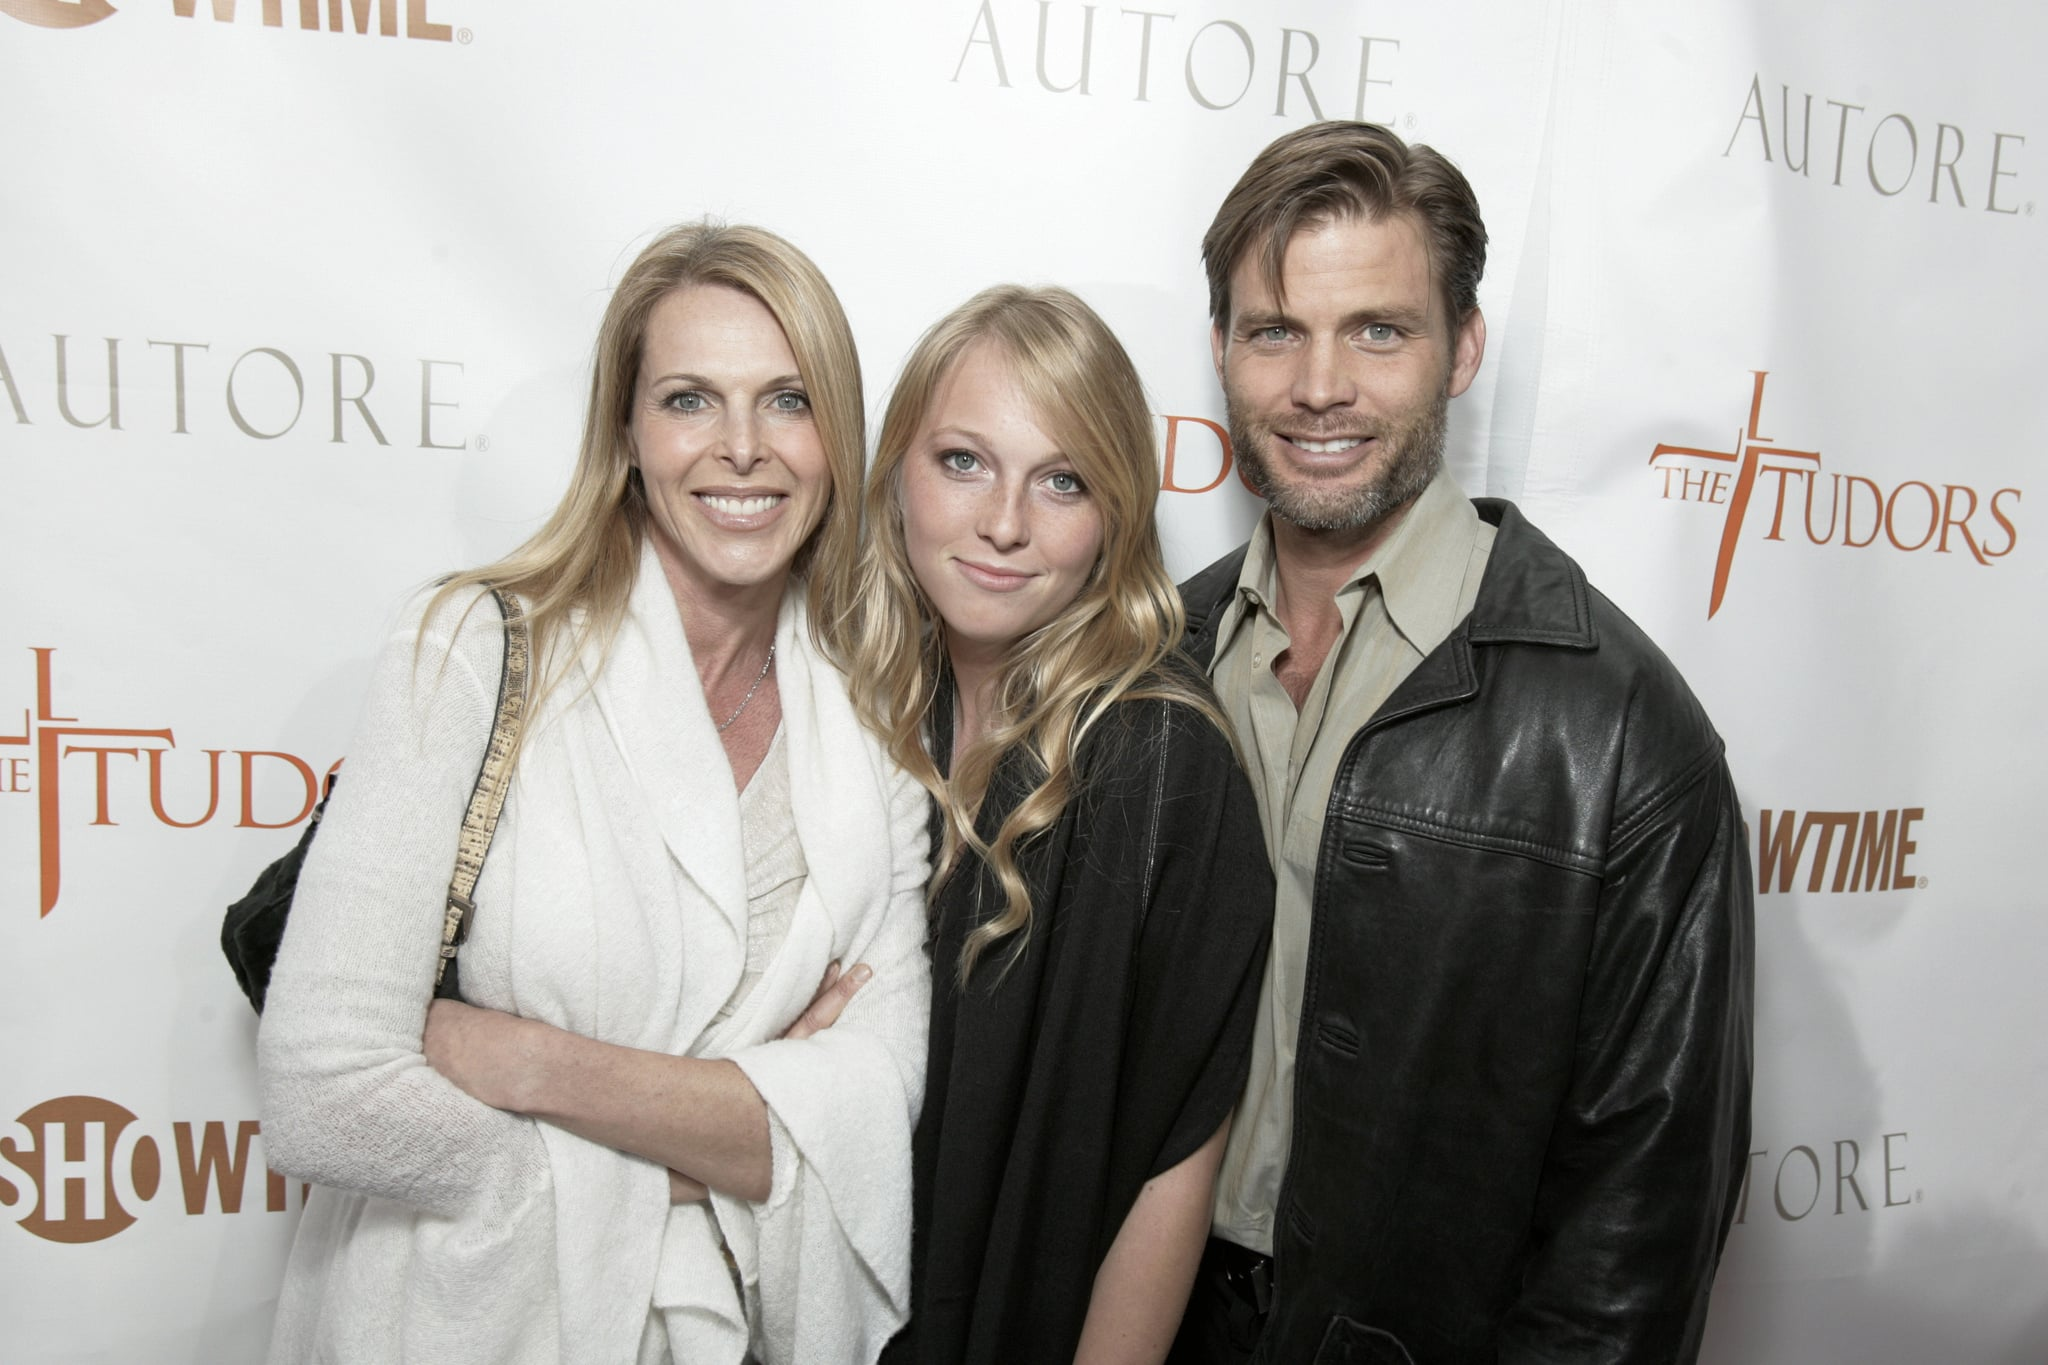 Catherine Oxenberg, India Oxenberg and Casper Van Dien (Photo by E. Charbonneau/WireImage for Showtime Networks)